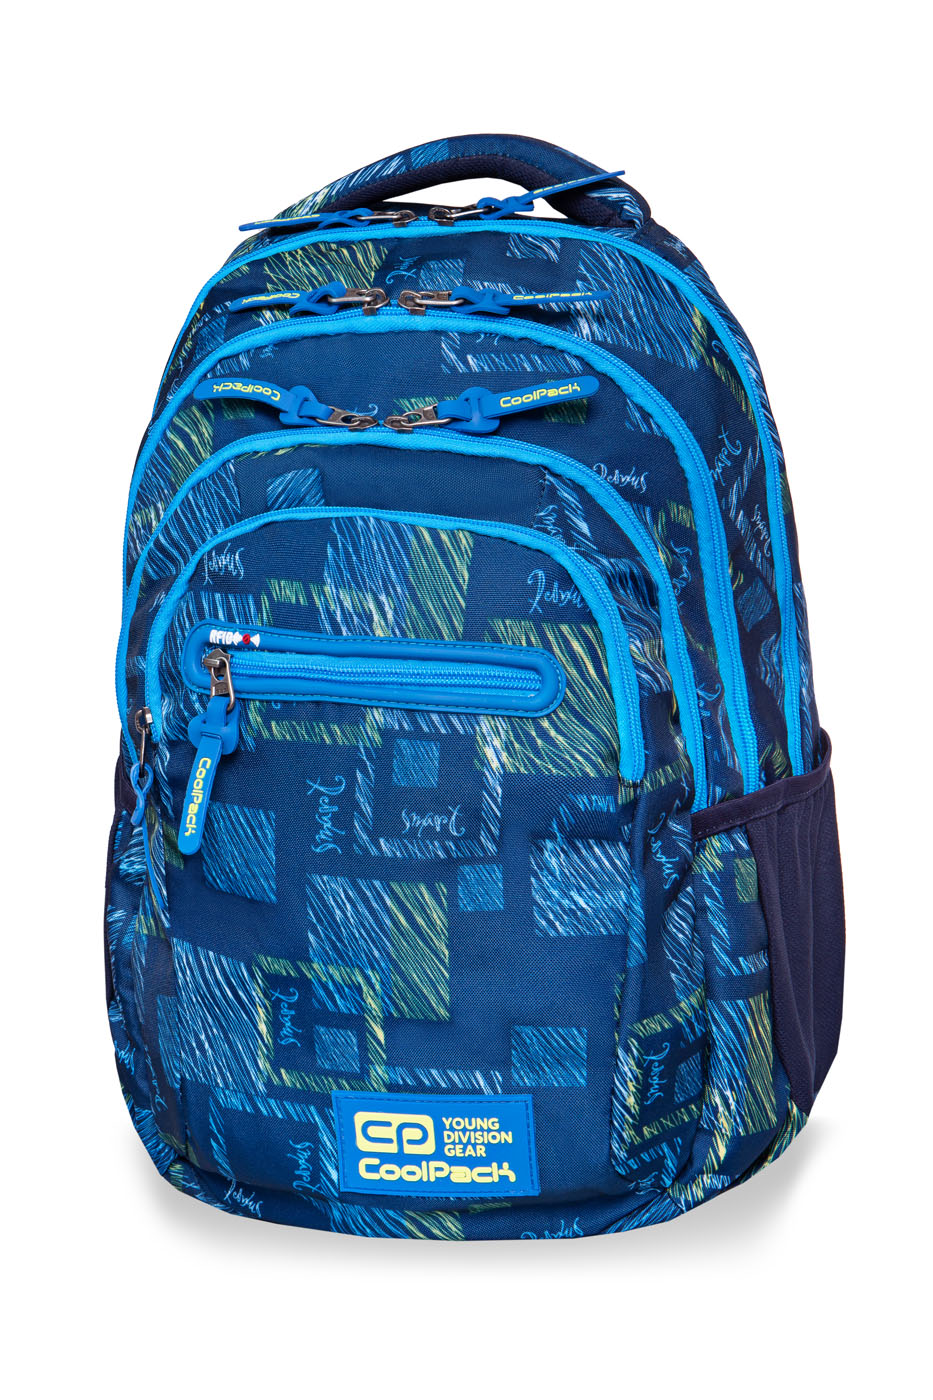 Coolpack - college tech - youth backpack - ocean room